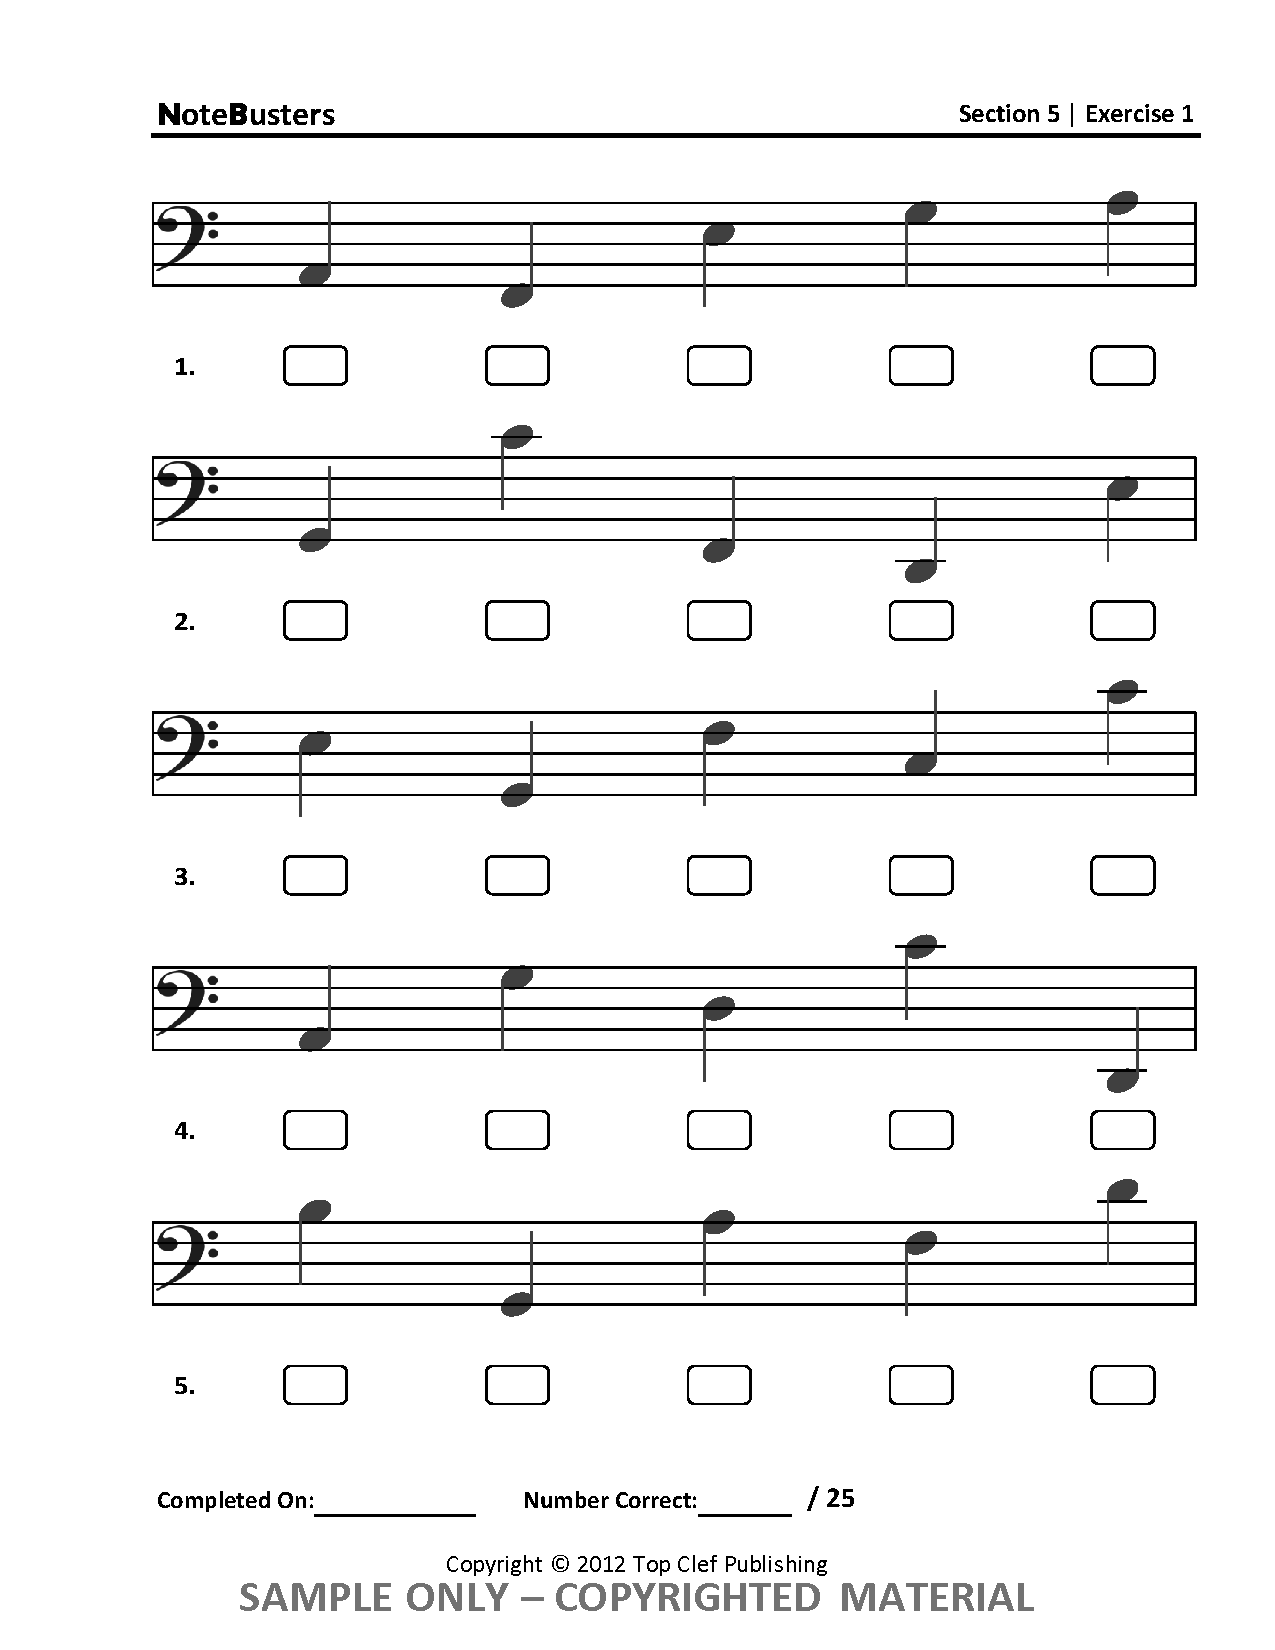 Notebusters Is A Music Workbook Designed To Increase Sight